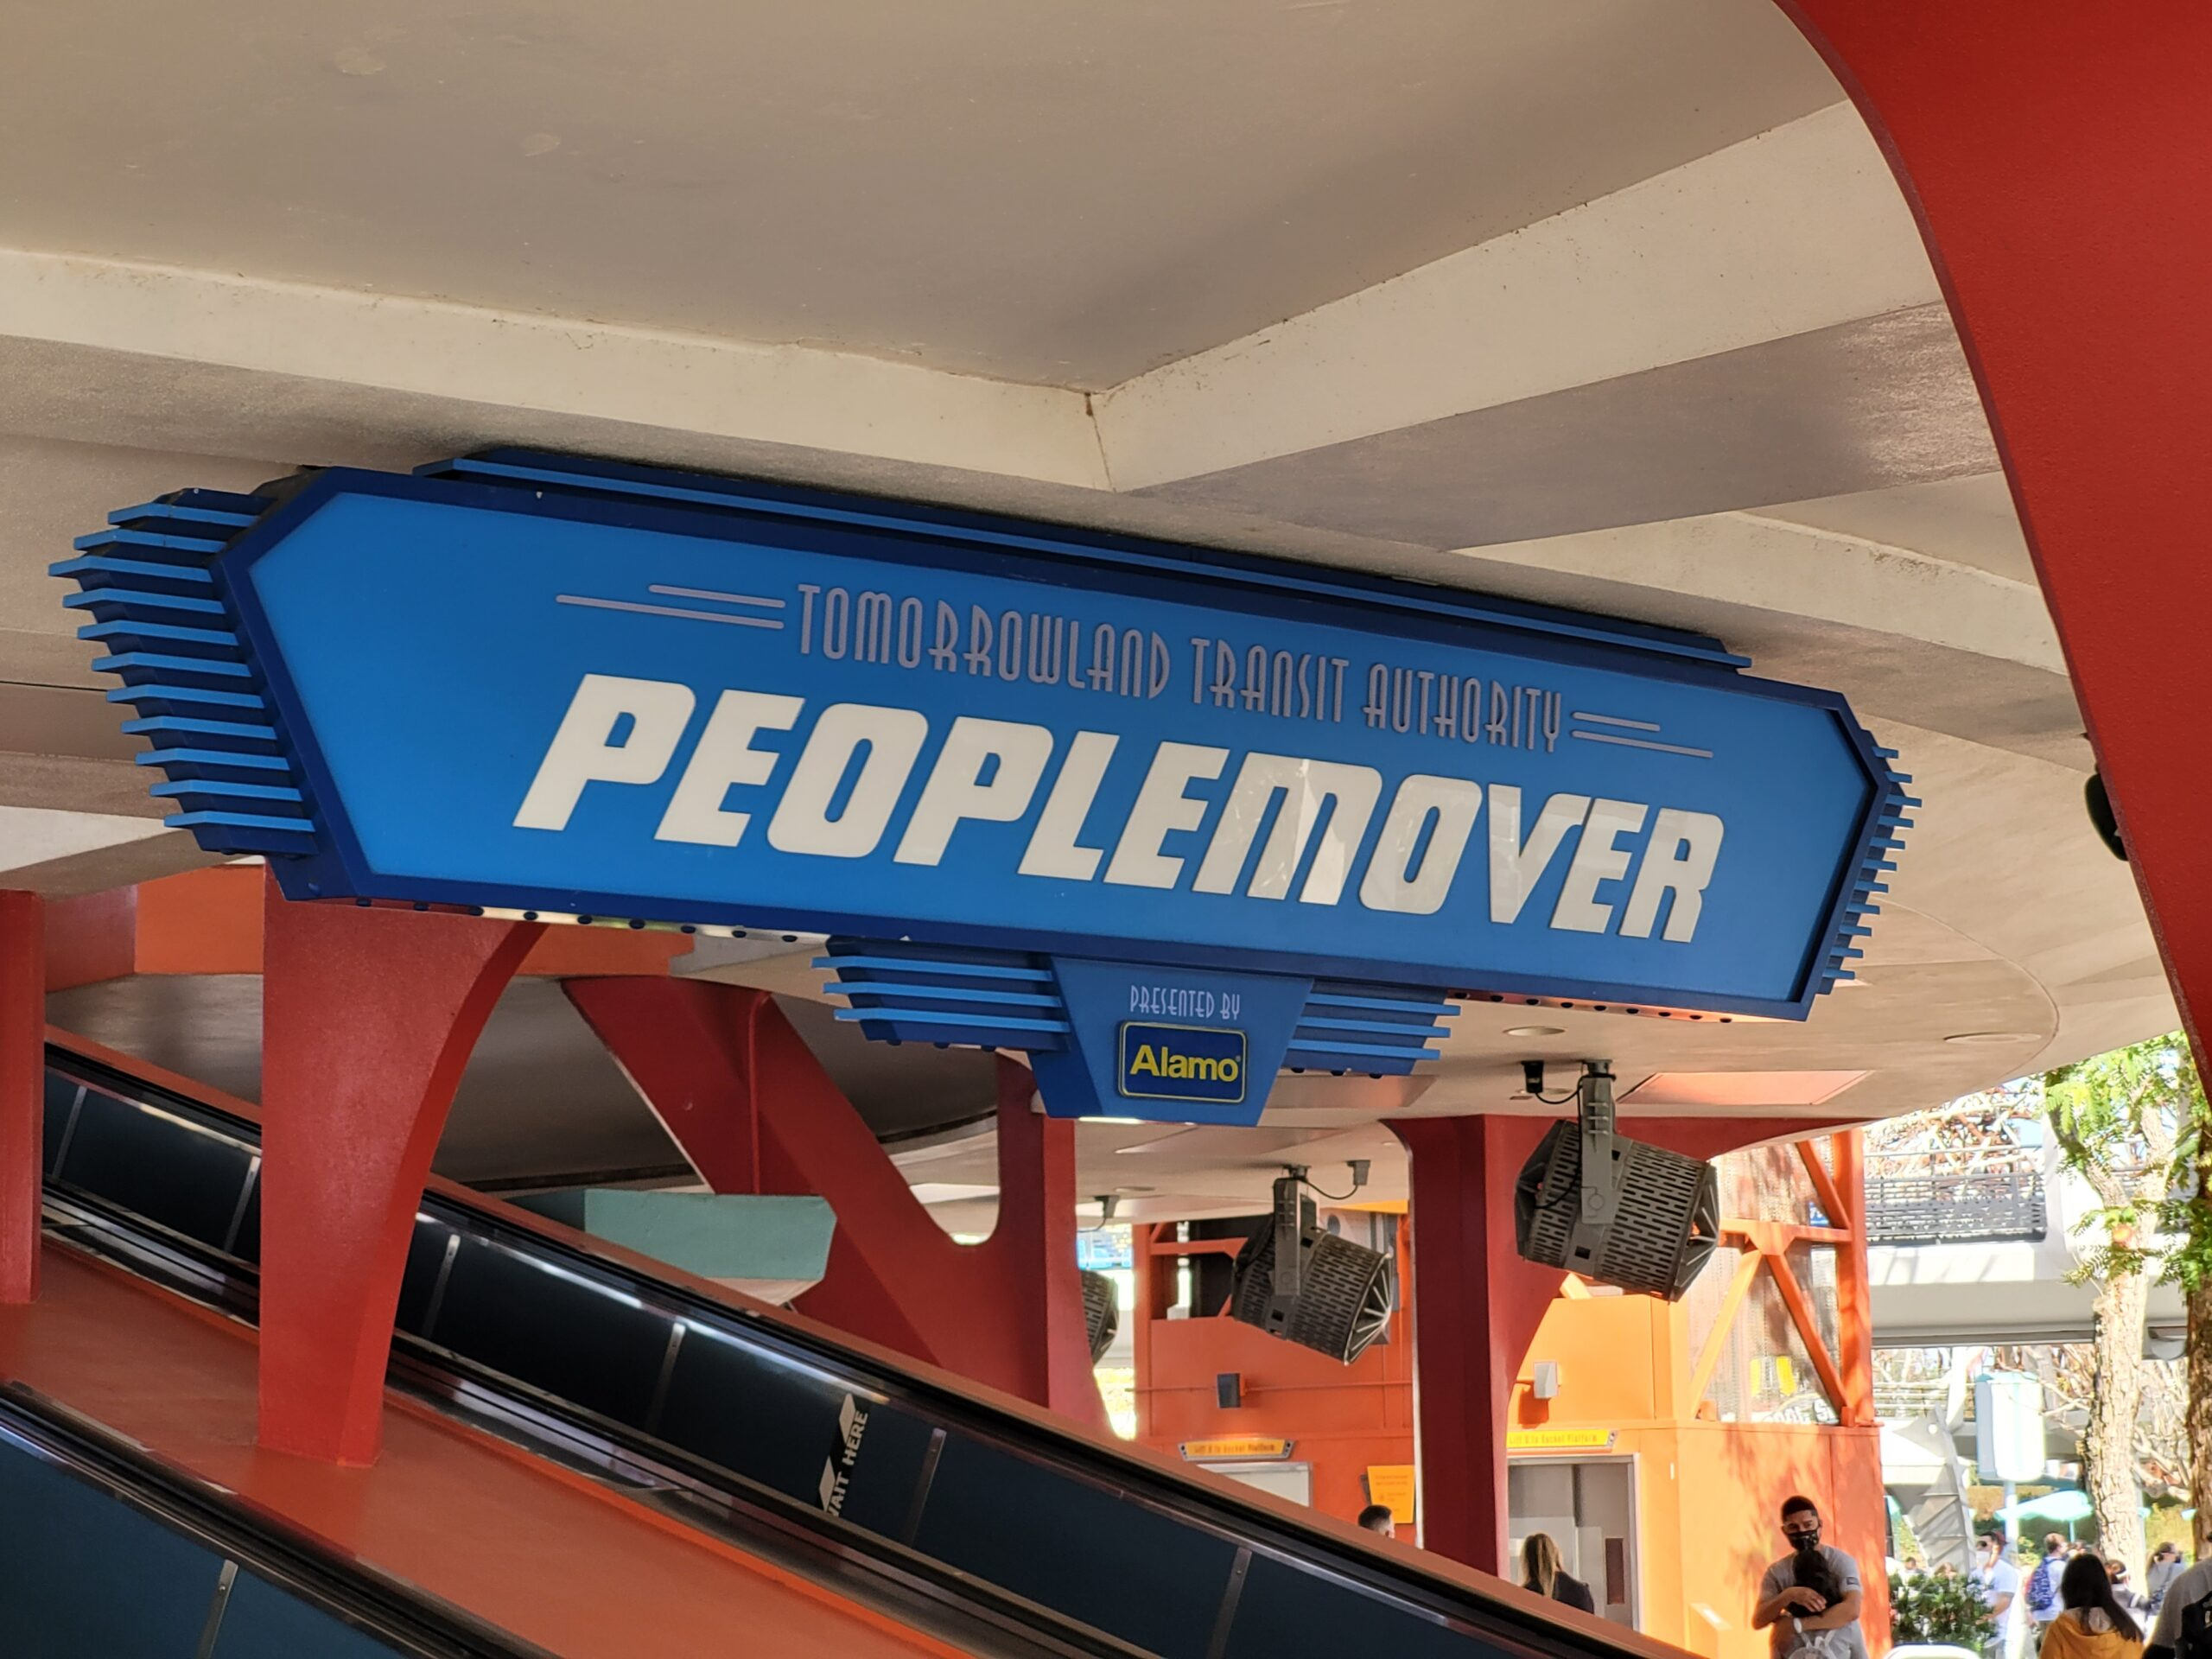 PeopleMover Sign in Tomorrowland at Magic Kingdom